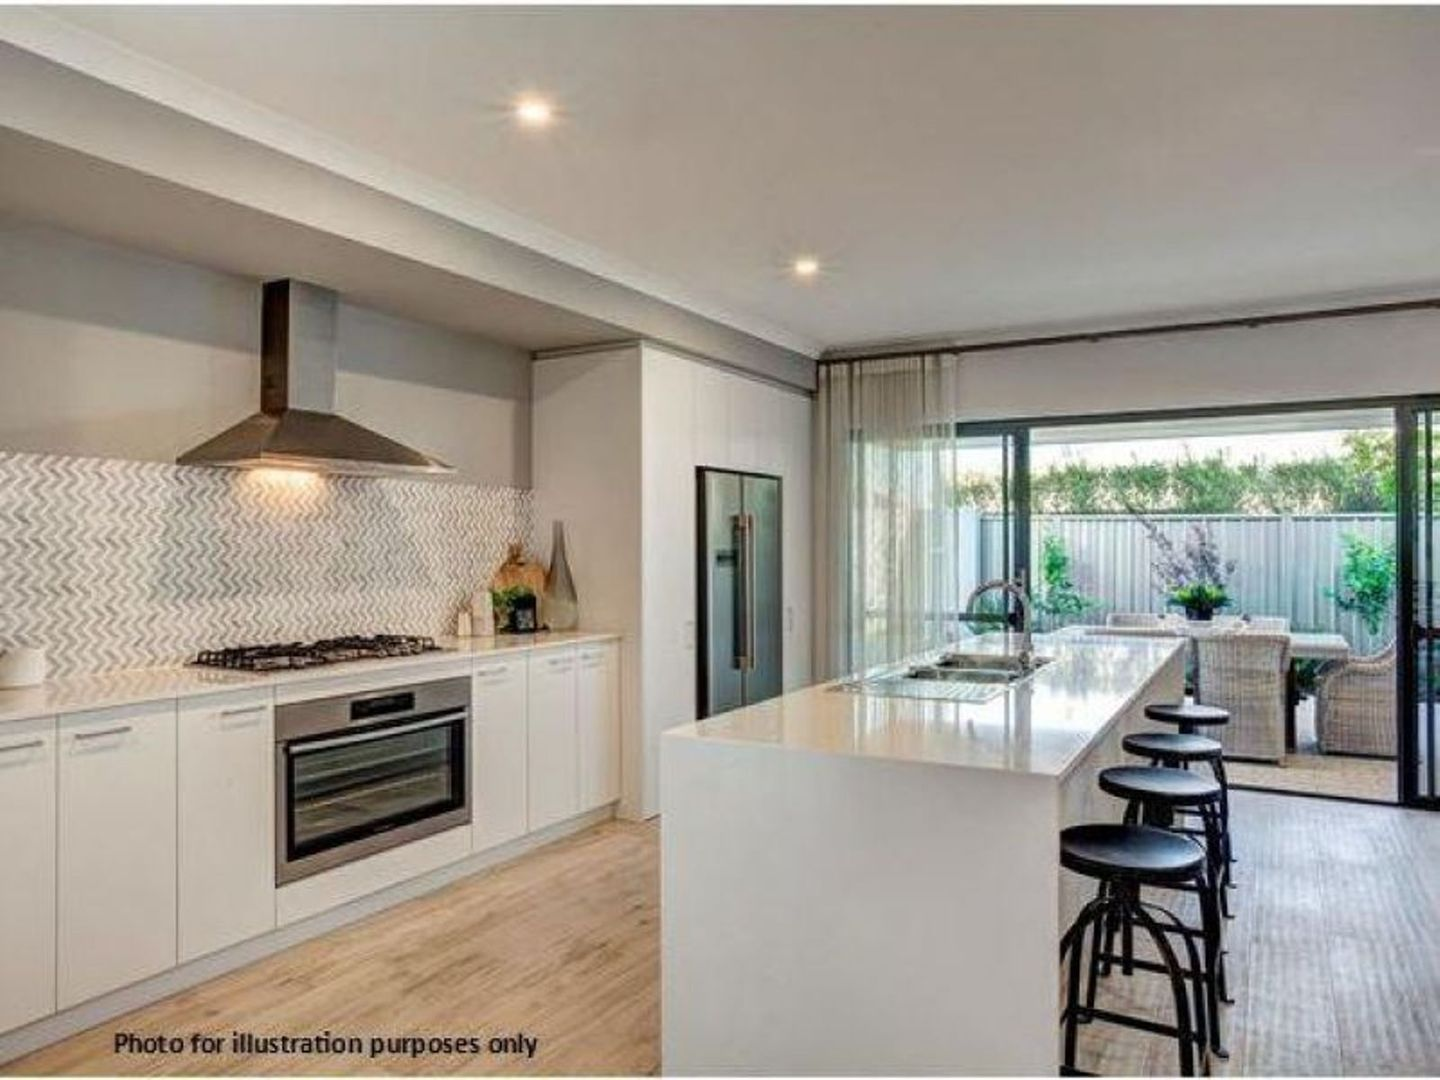 48 Harris Road, House & Land Packages, Busselton WA 6280, Image 0